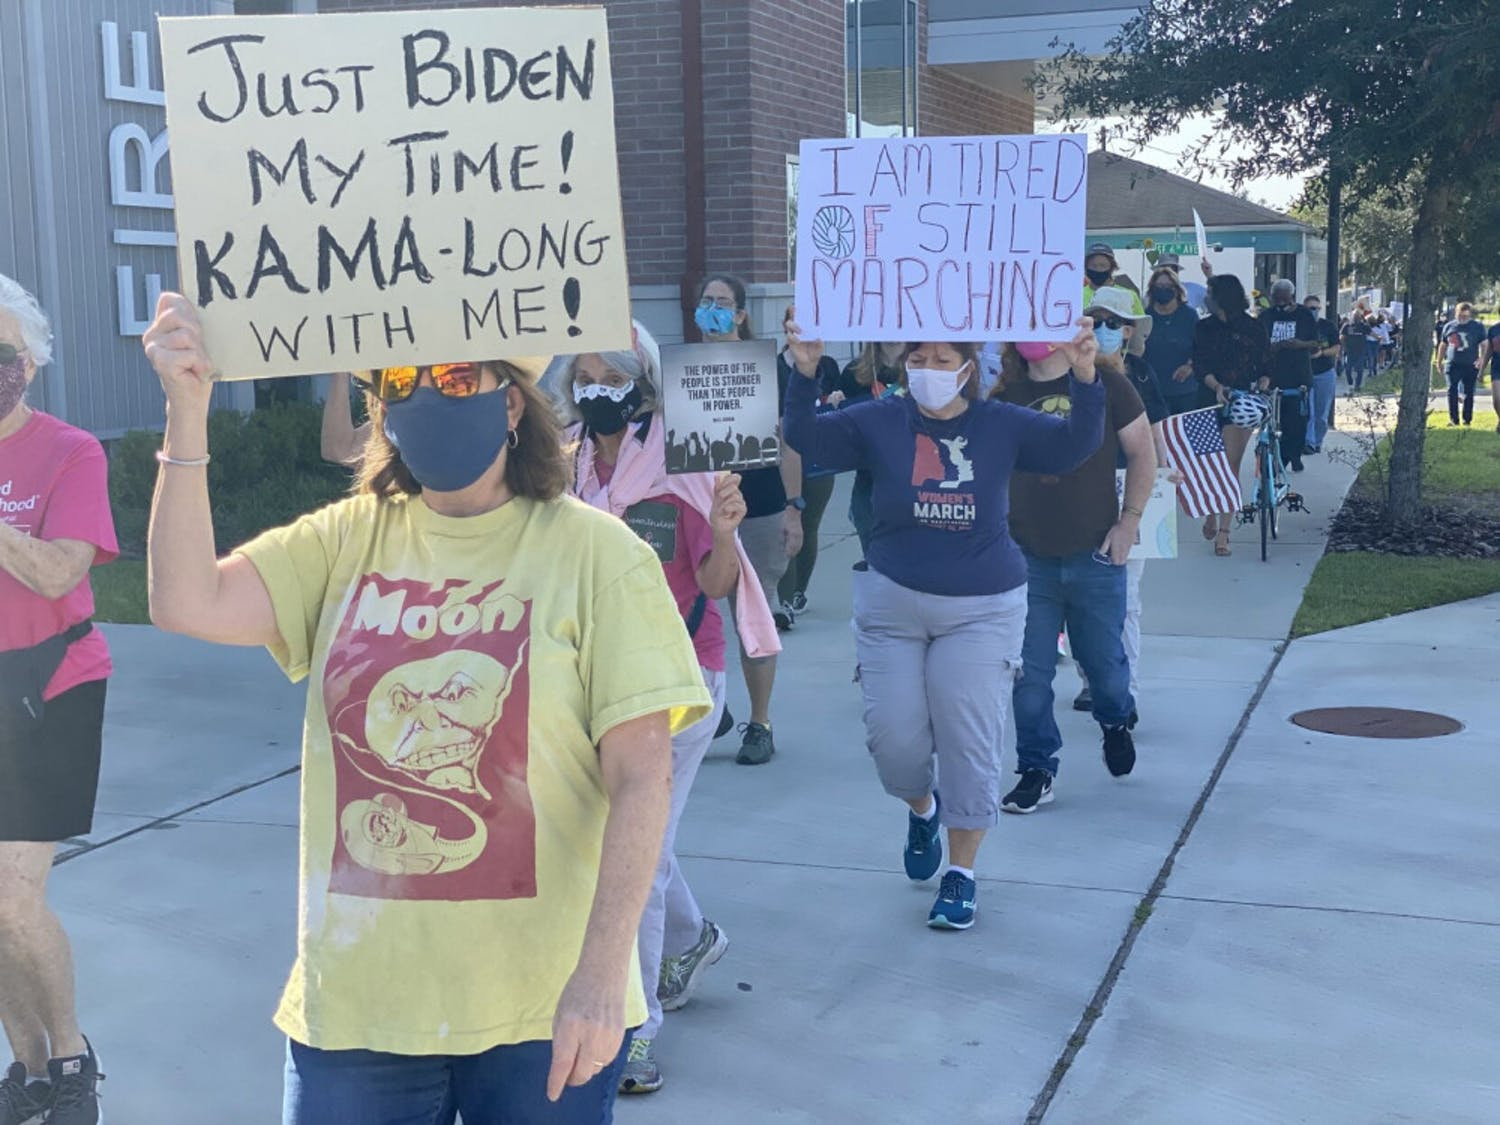 "Marchers carry signs with messages such as ""Just Biden my time! Kama-long with me!"" and ""I am tired of still marching"" in support of Democratic presidential nominee Joe Biden and vice presidential nominee Kamala Harris."